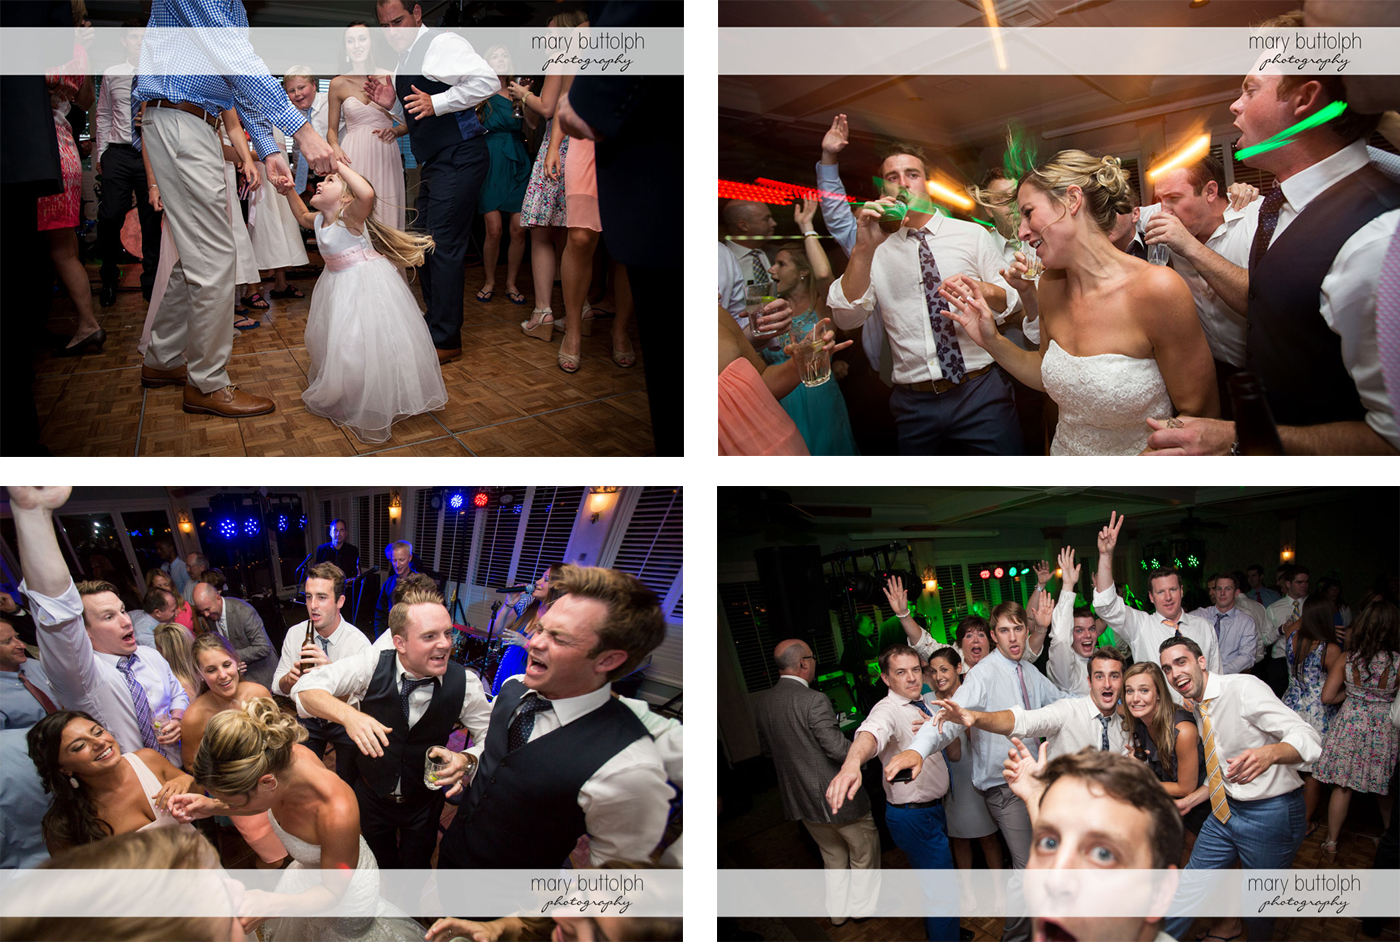 Various shots of the wedding party and guests having a good time on the dance floor at Skaneateles Country Club Wedding